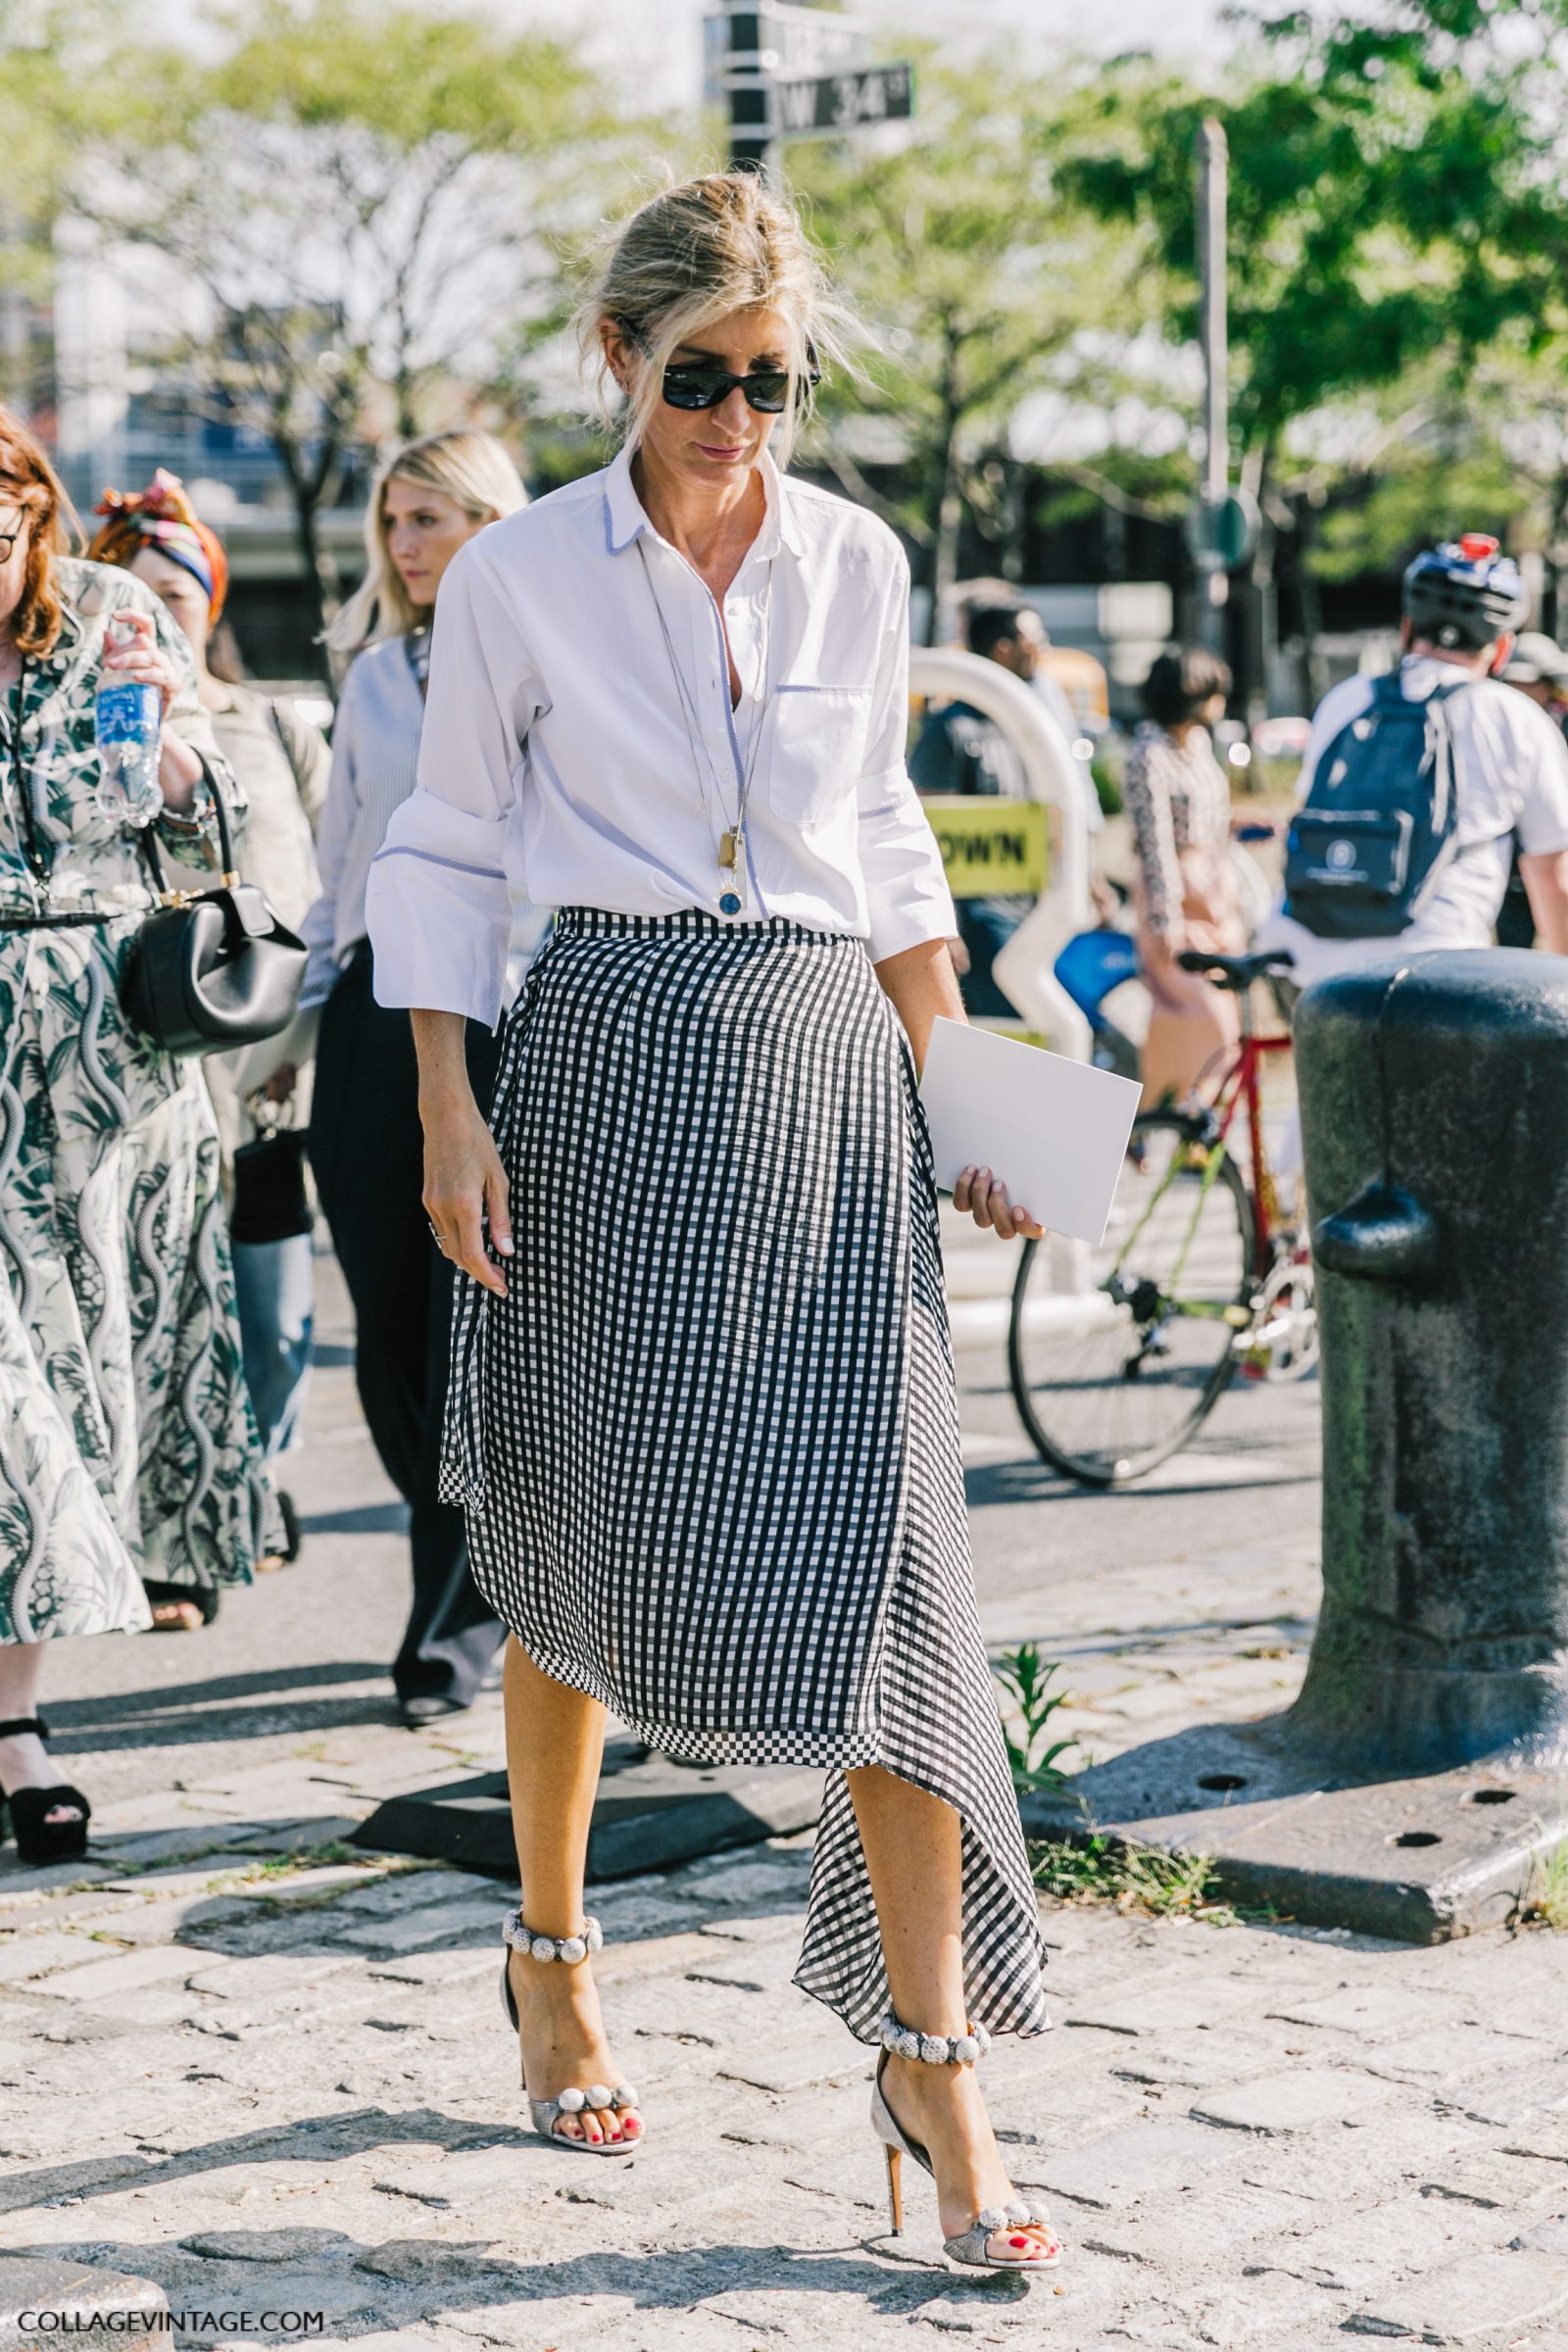 NYFW-New_York_Fashion_Week_SS17-Street_Style-Outfits-Collage_Vintage-Vintage-Mansur_Gavriel-Rodarte-Coach-135-1600x2400